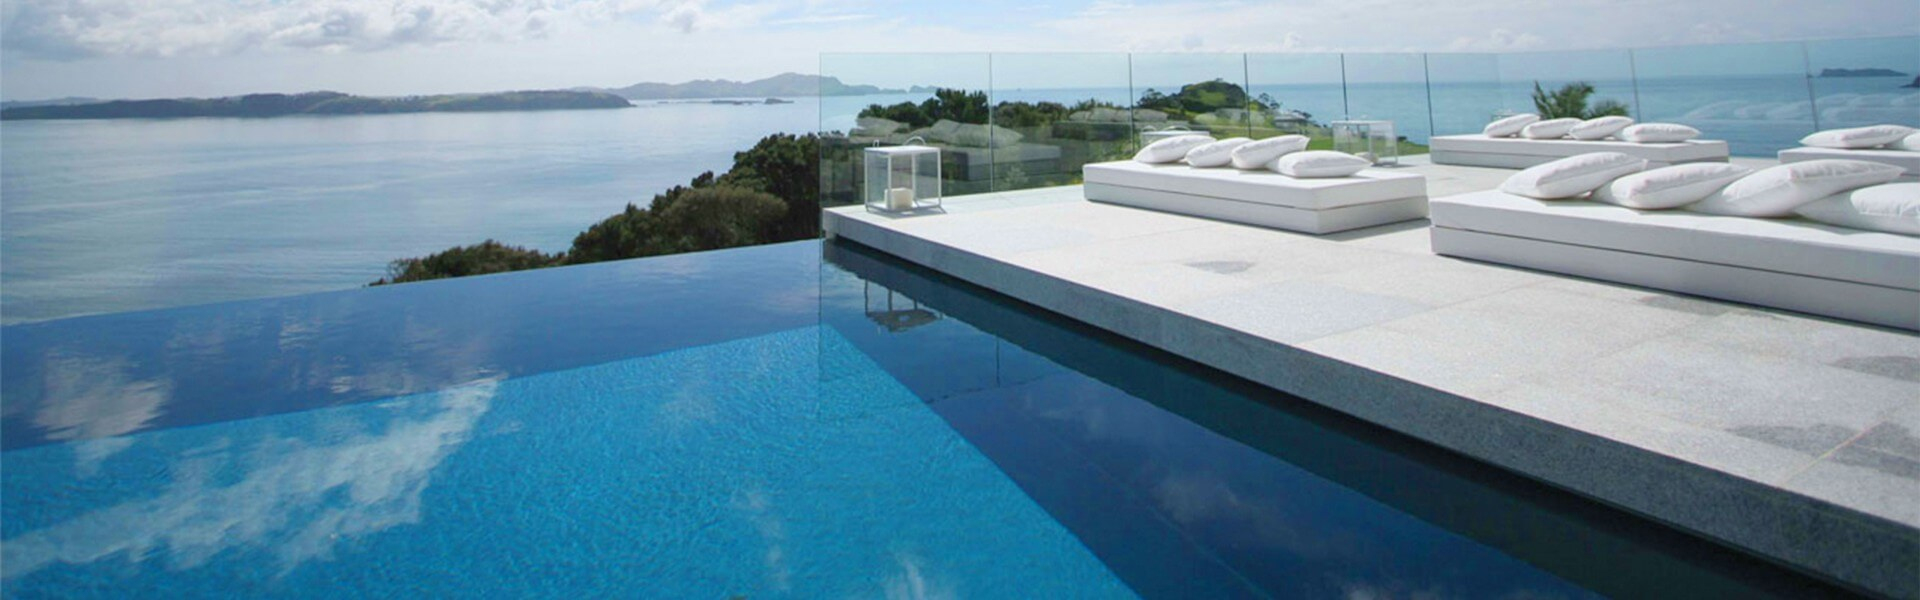 Abriblue Covers For Swimming Pools - Swimmingpool pour Immax Poolabdeckung